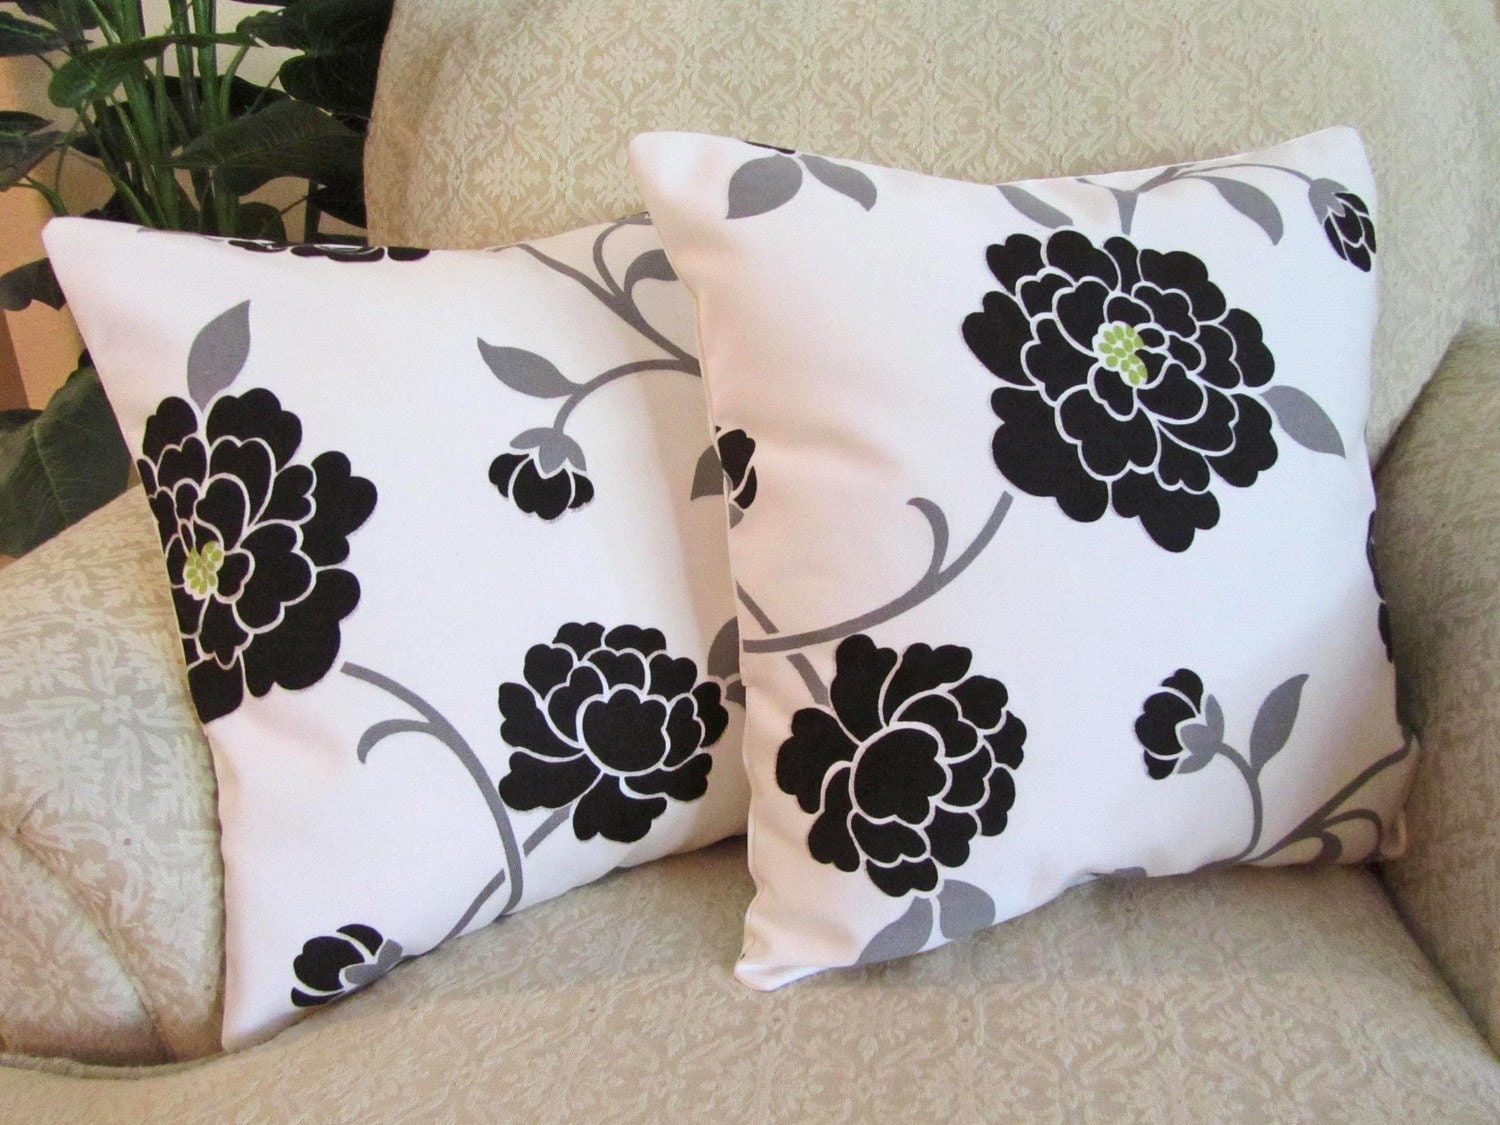 Black White And Green Throw Pillows : Decorative Throw Pillow Covers Black White Lime Green Set of